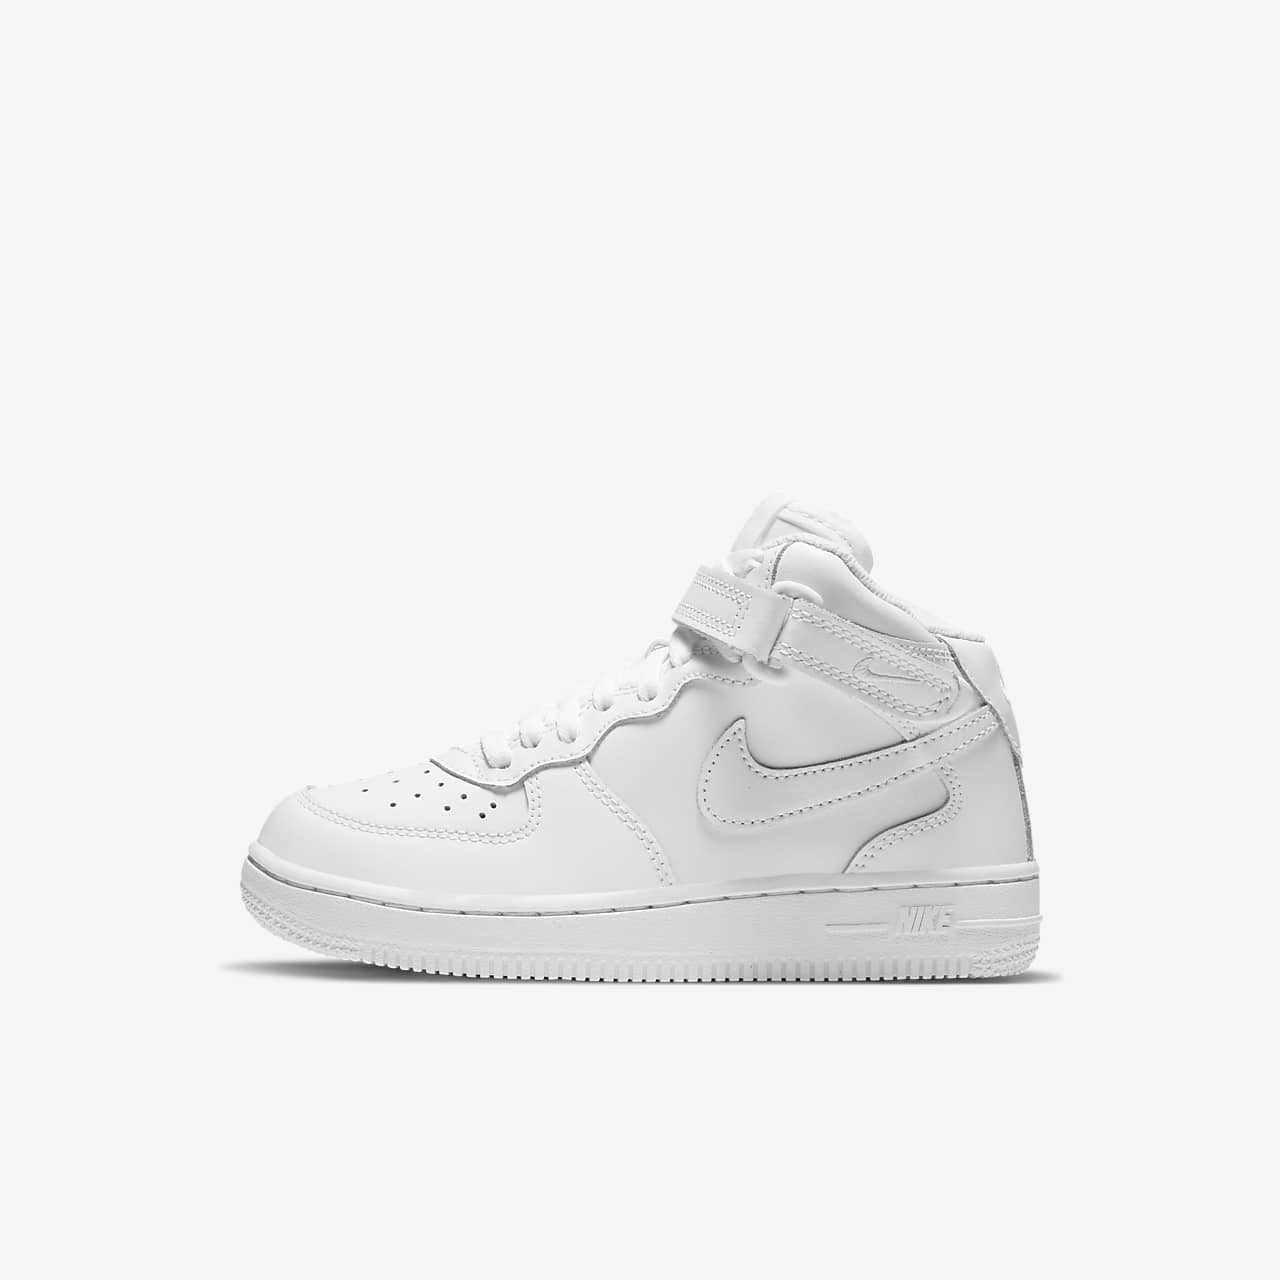 1e2df41a9bf0 Nike Air Force 1 Mid Little Kids  Shoe. Nike.com